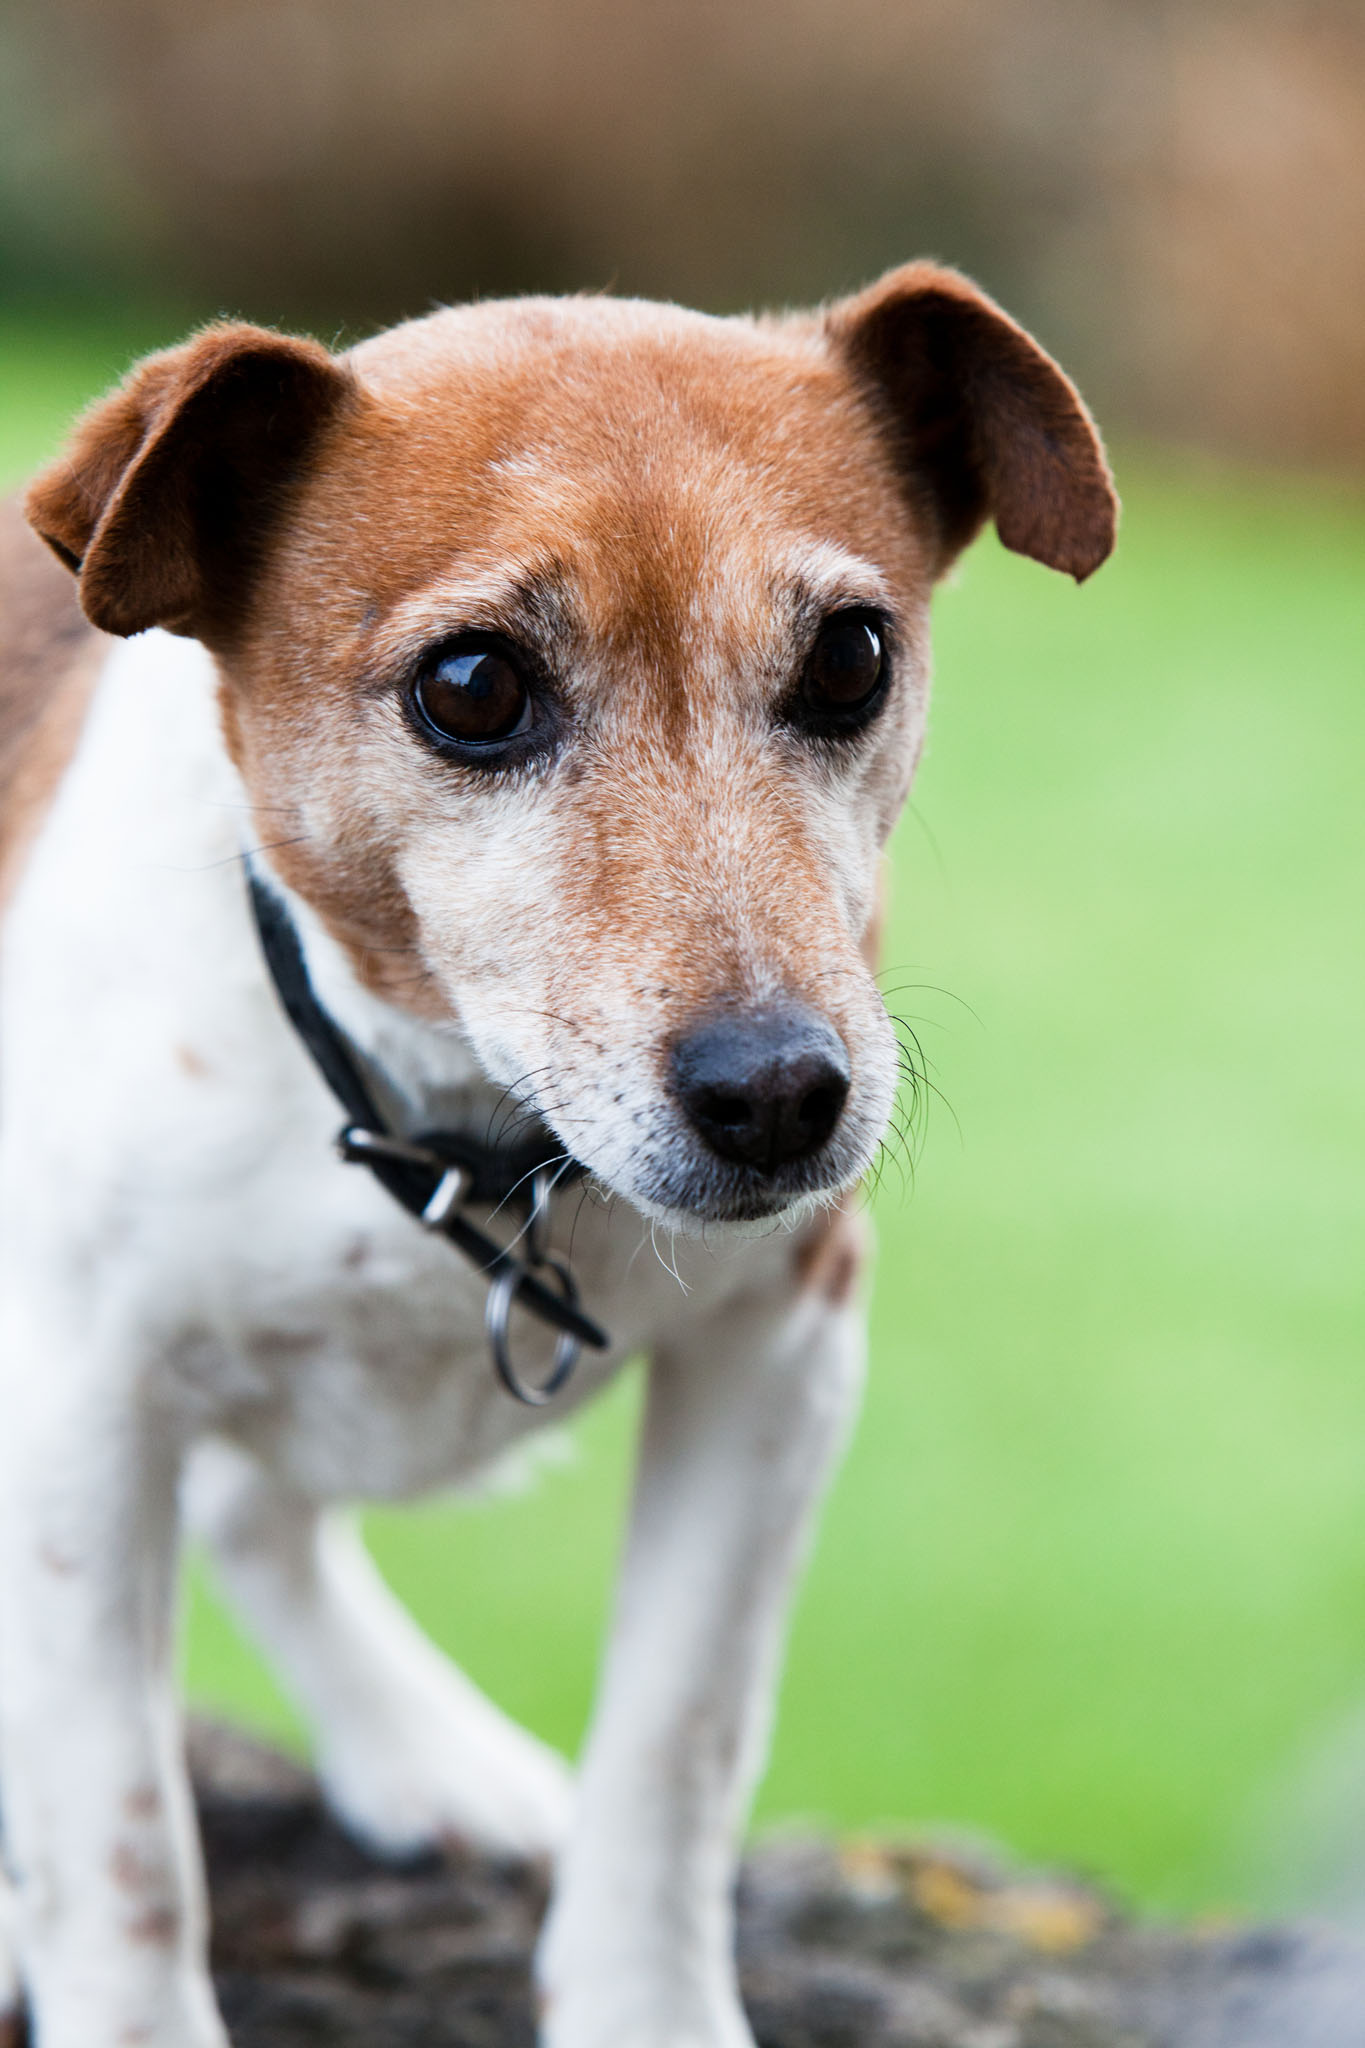 Pet portrait photography of a Jack Russell dog on a wall in Anglesey, North Wales